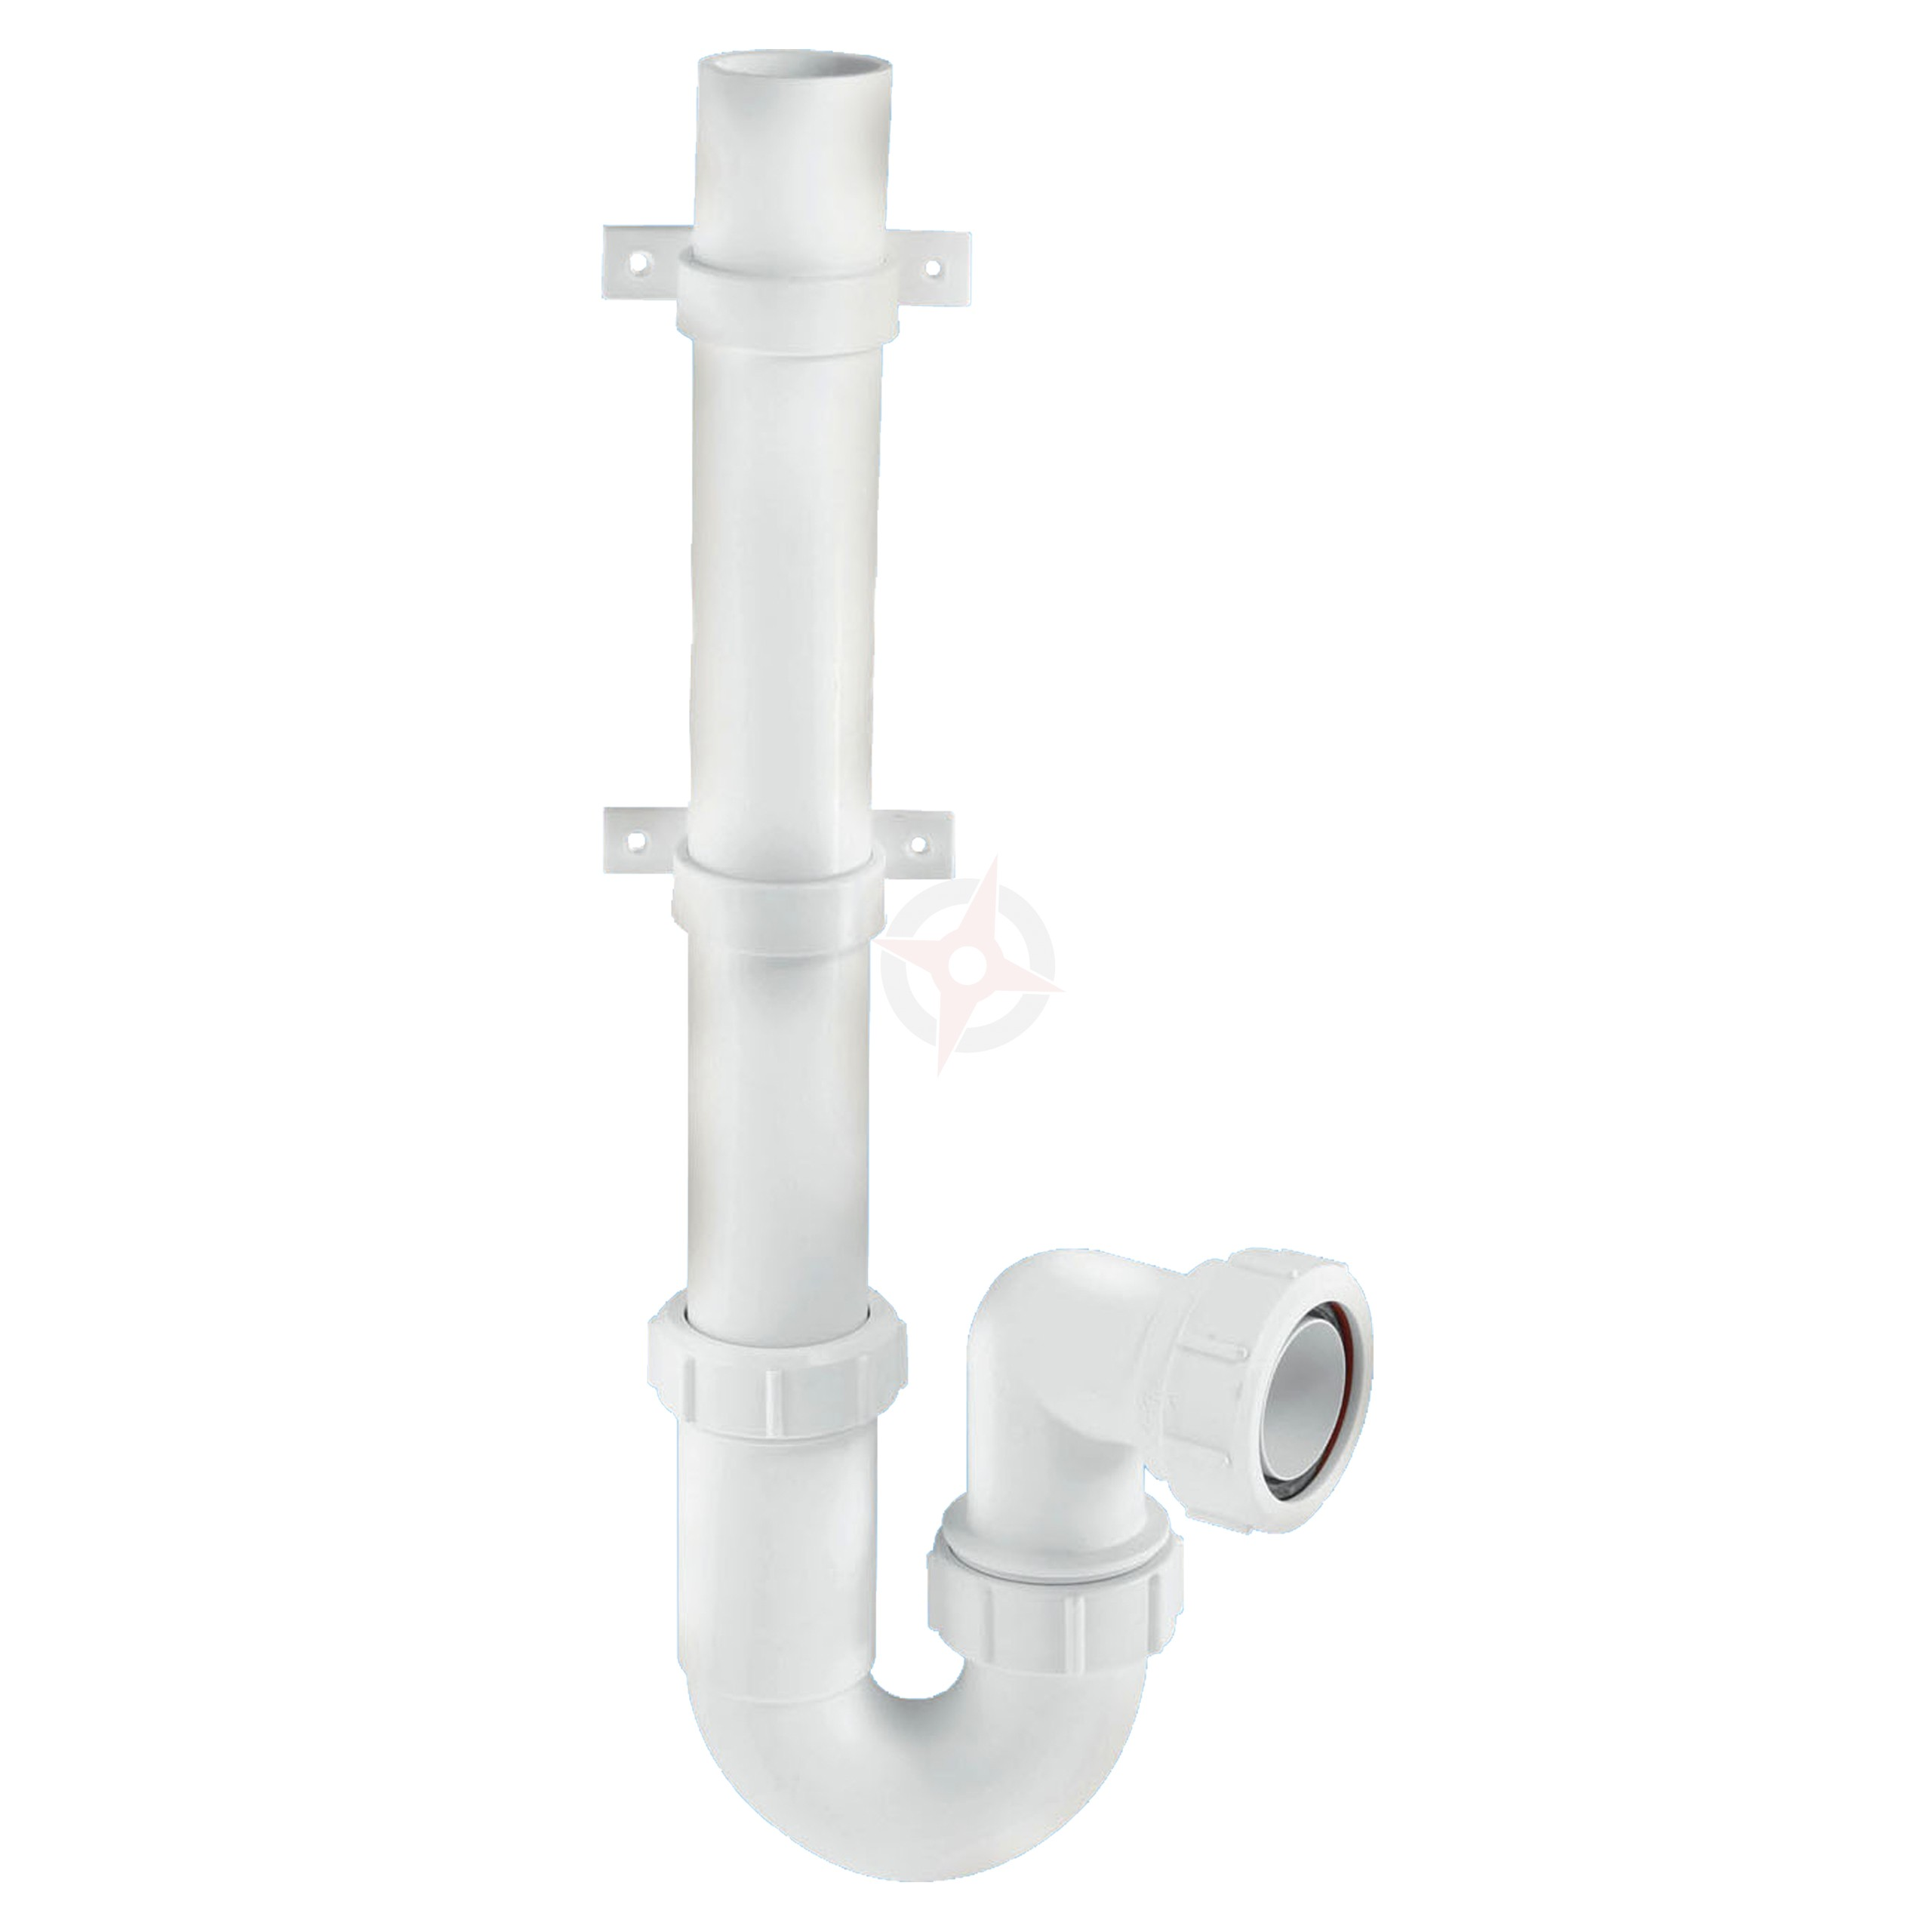 McAlpine 40mm White Washing Machine Upstand Trap WM3